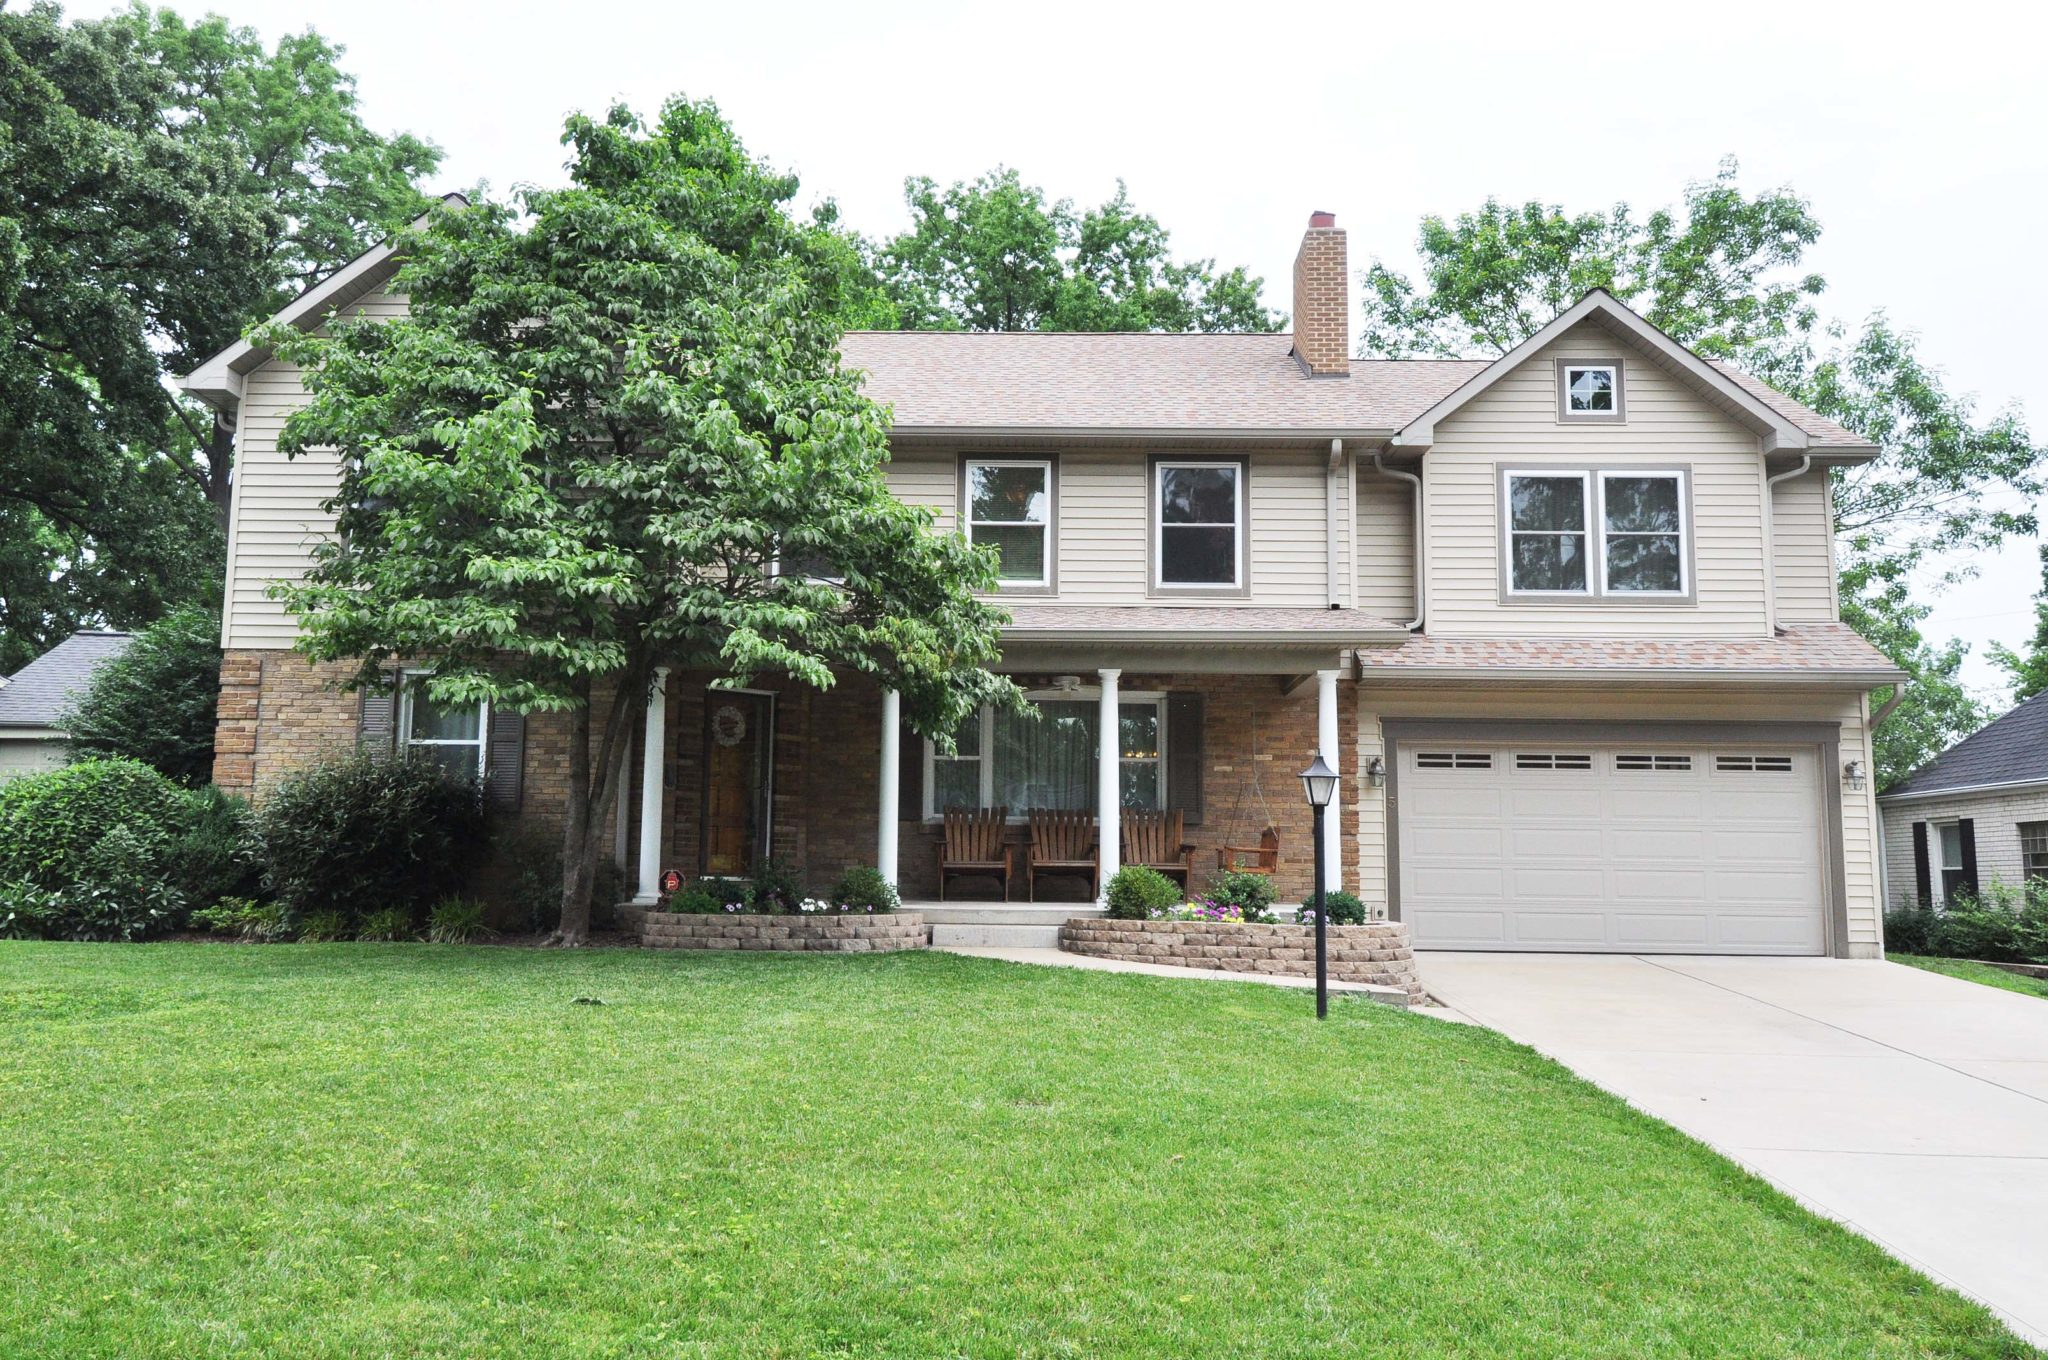 WEBSTER GROVES: 5 Villawood Lane (63119)